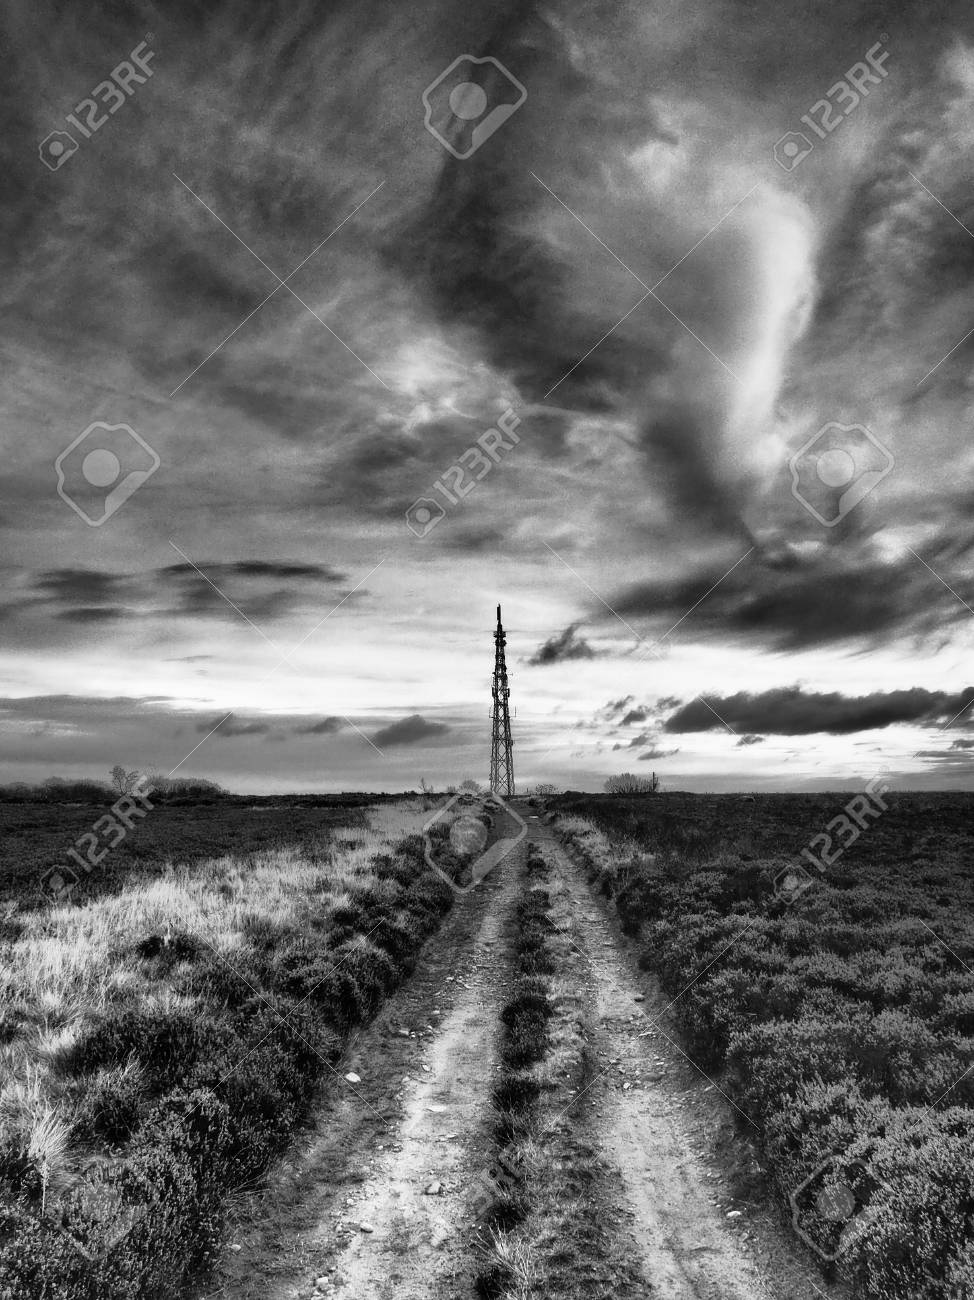 Stock photo transmitter mast viewed from howdale moor under dark menacing brooding sky shot in black and white in the north york moors national park